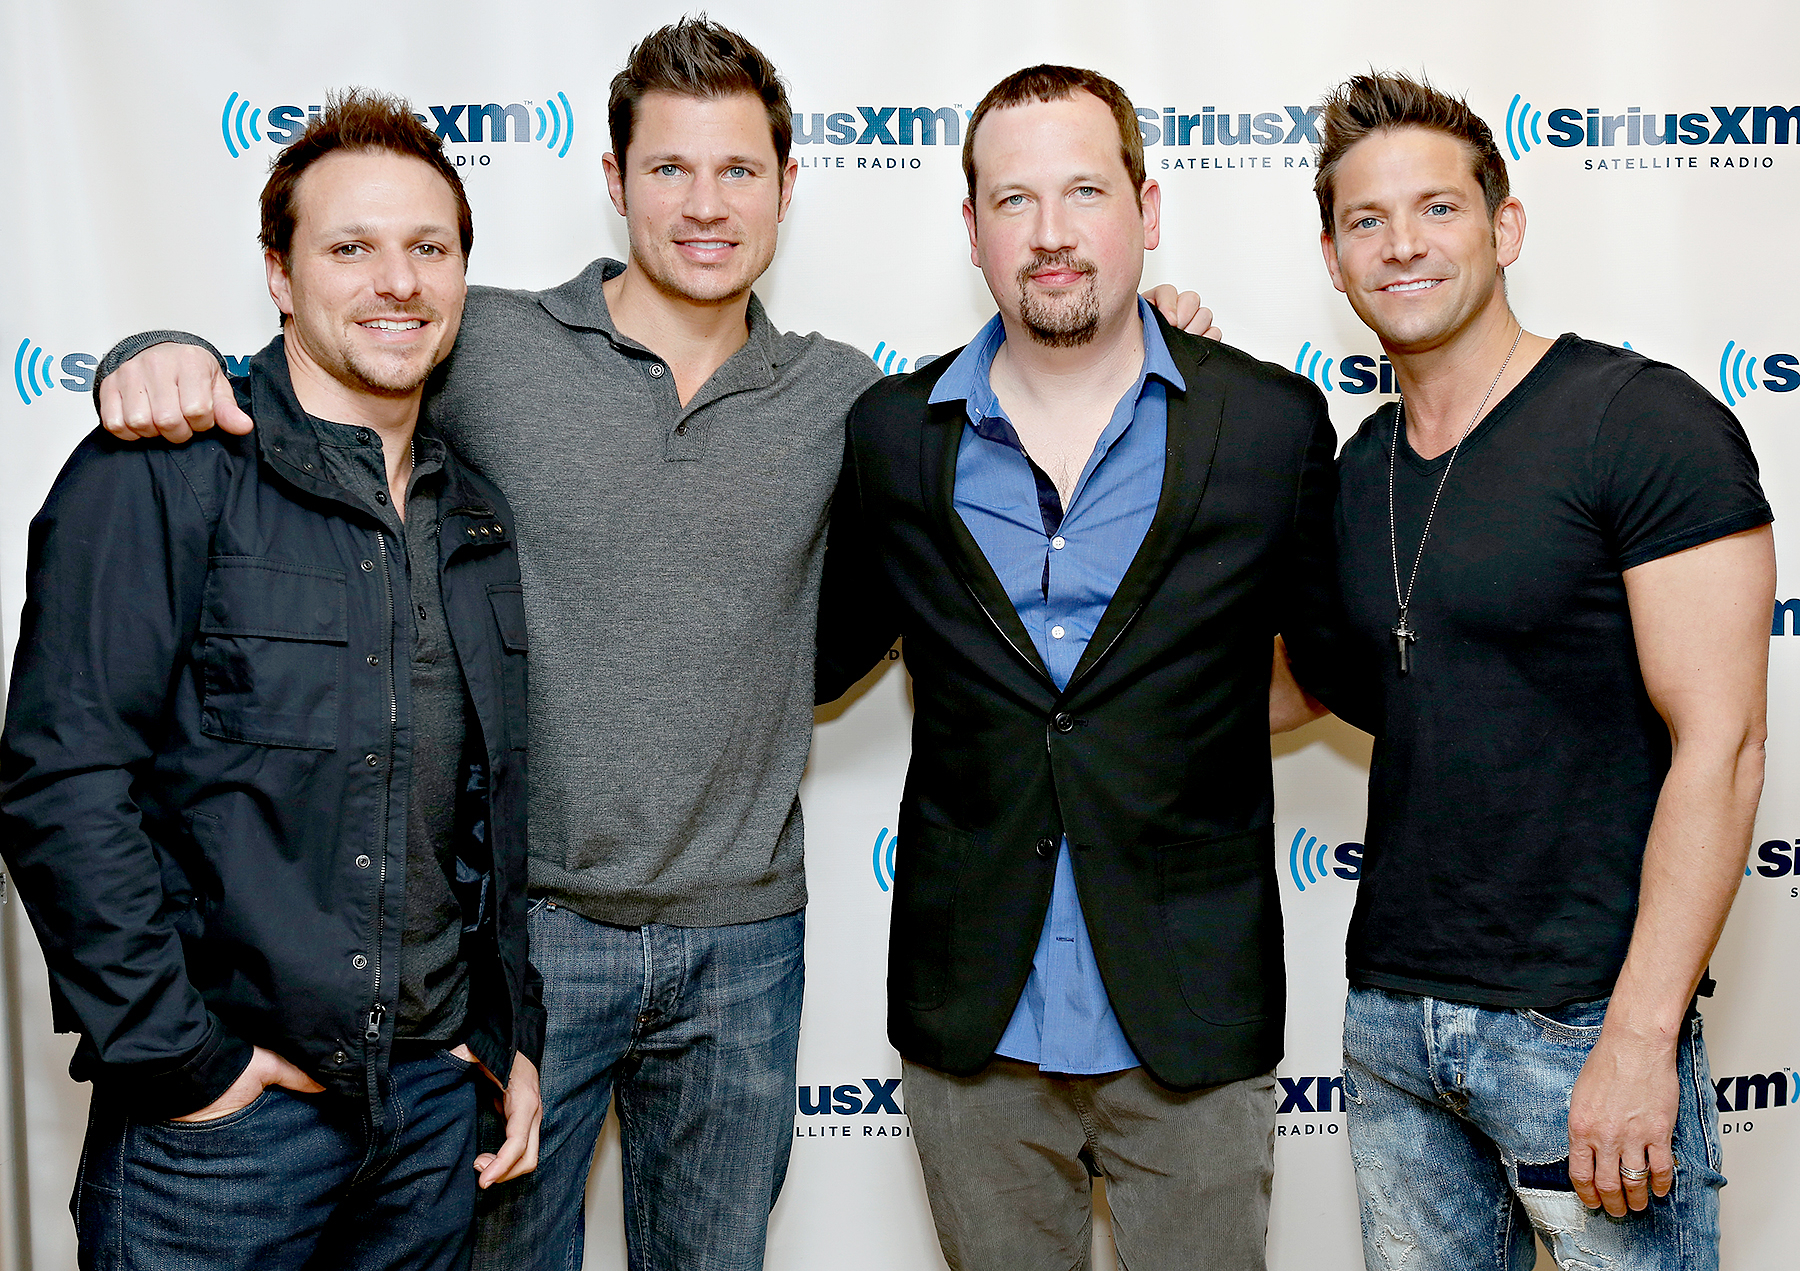 Drew Lachey, Nick Lachay, Justin Jeffre and Jeff Timmons of 98 Degrees visit the SiriusXM Studios on April 5, 2013 in New York City.